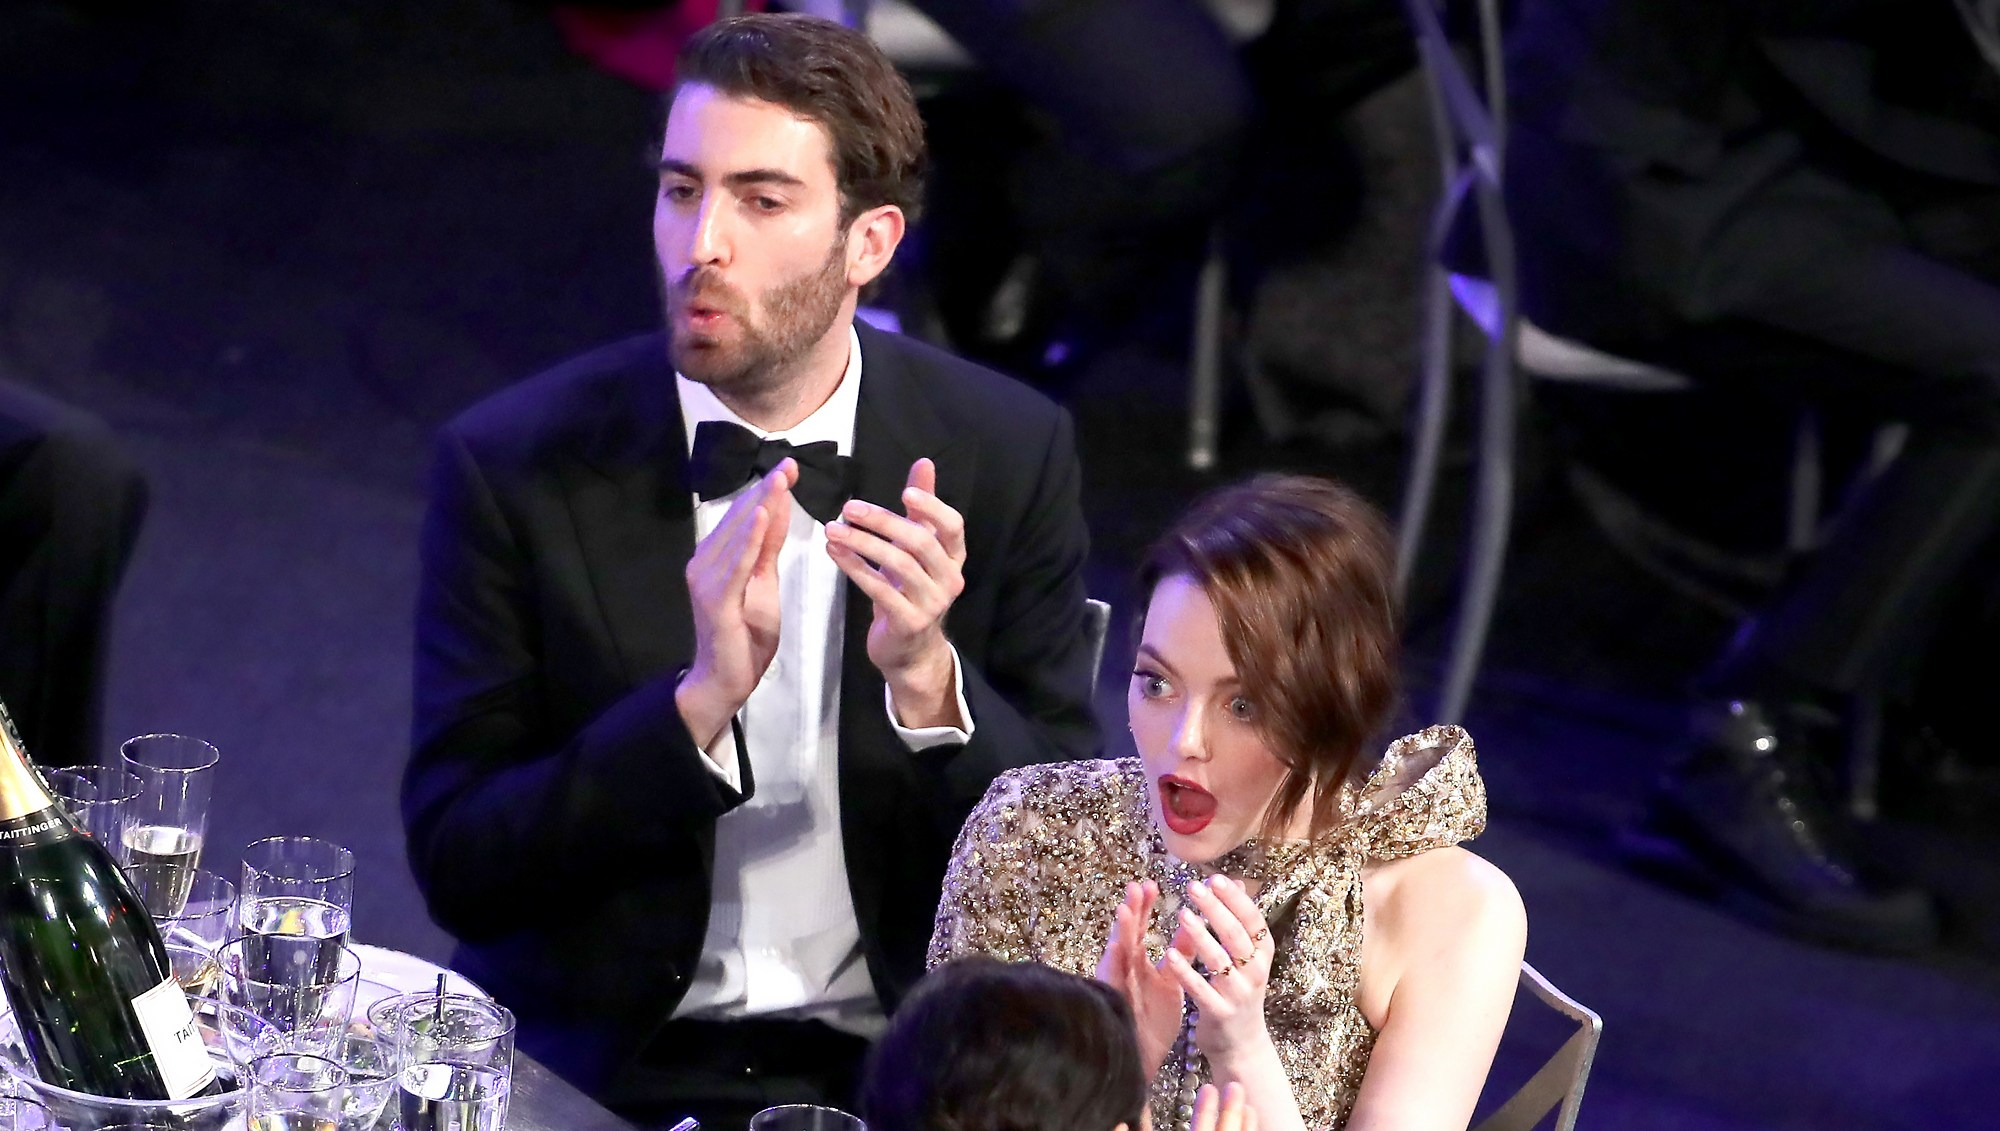 Emma-Stone-and-Dave-Mcary-SAG-awards-2019